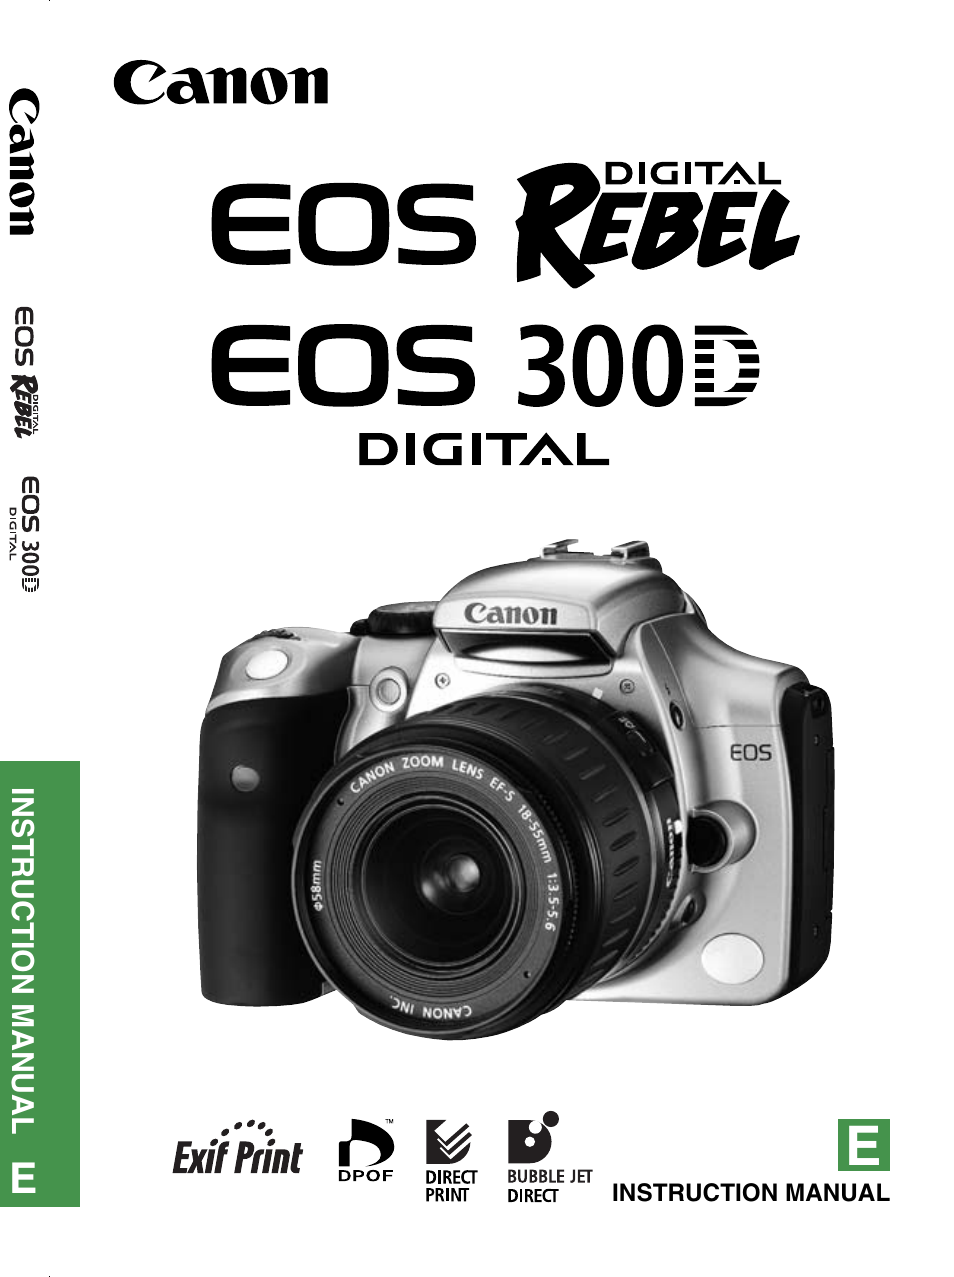 eos rebel k2 user manual how to and user guide instructions u2022 rh taxibermuda co Canon EOS Rebel T3 Canon EOS Rebel T3